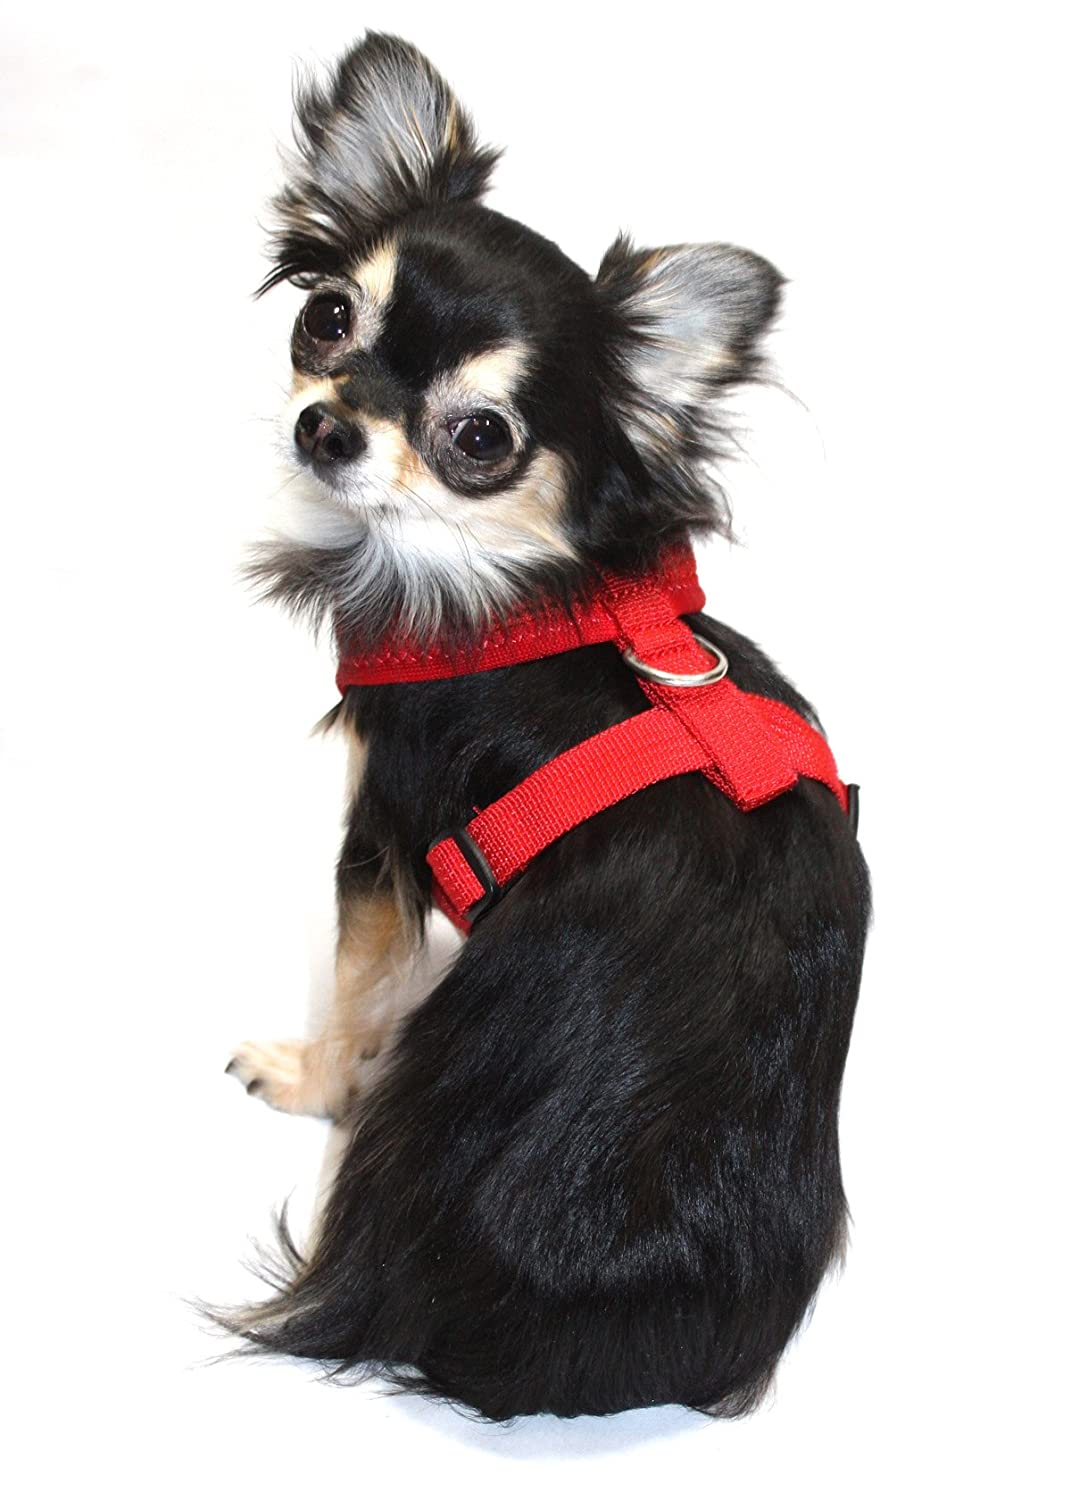 product over pet mesh shipping and dog padded overstock supplies free comfort on lucybelle harness orders comforter nylon lead pets